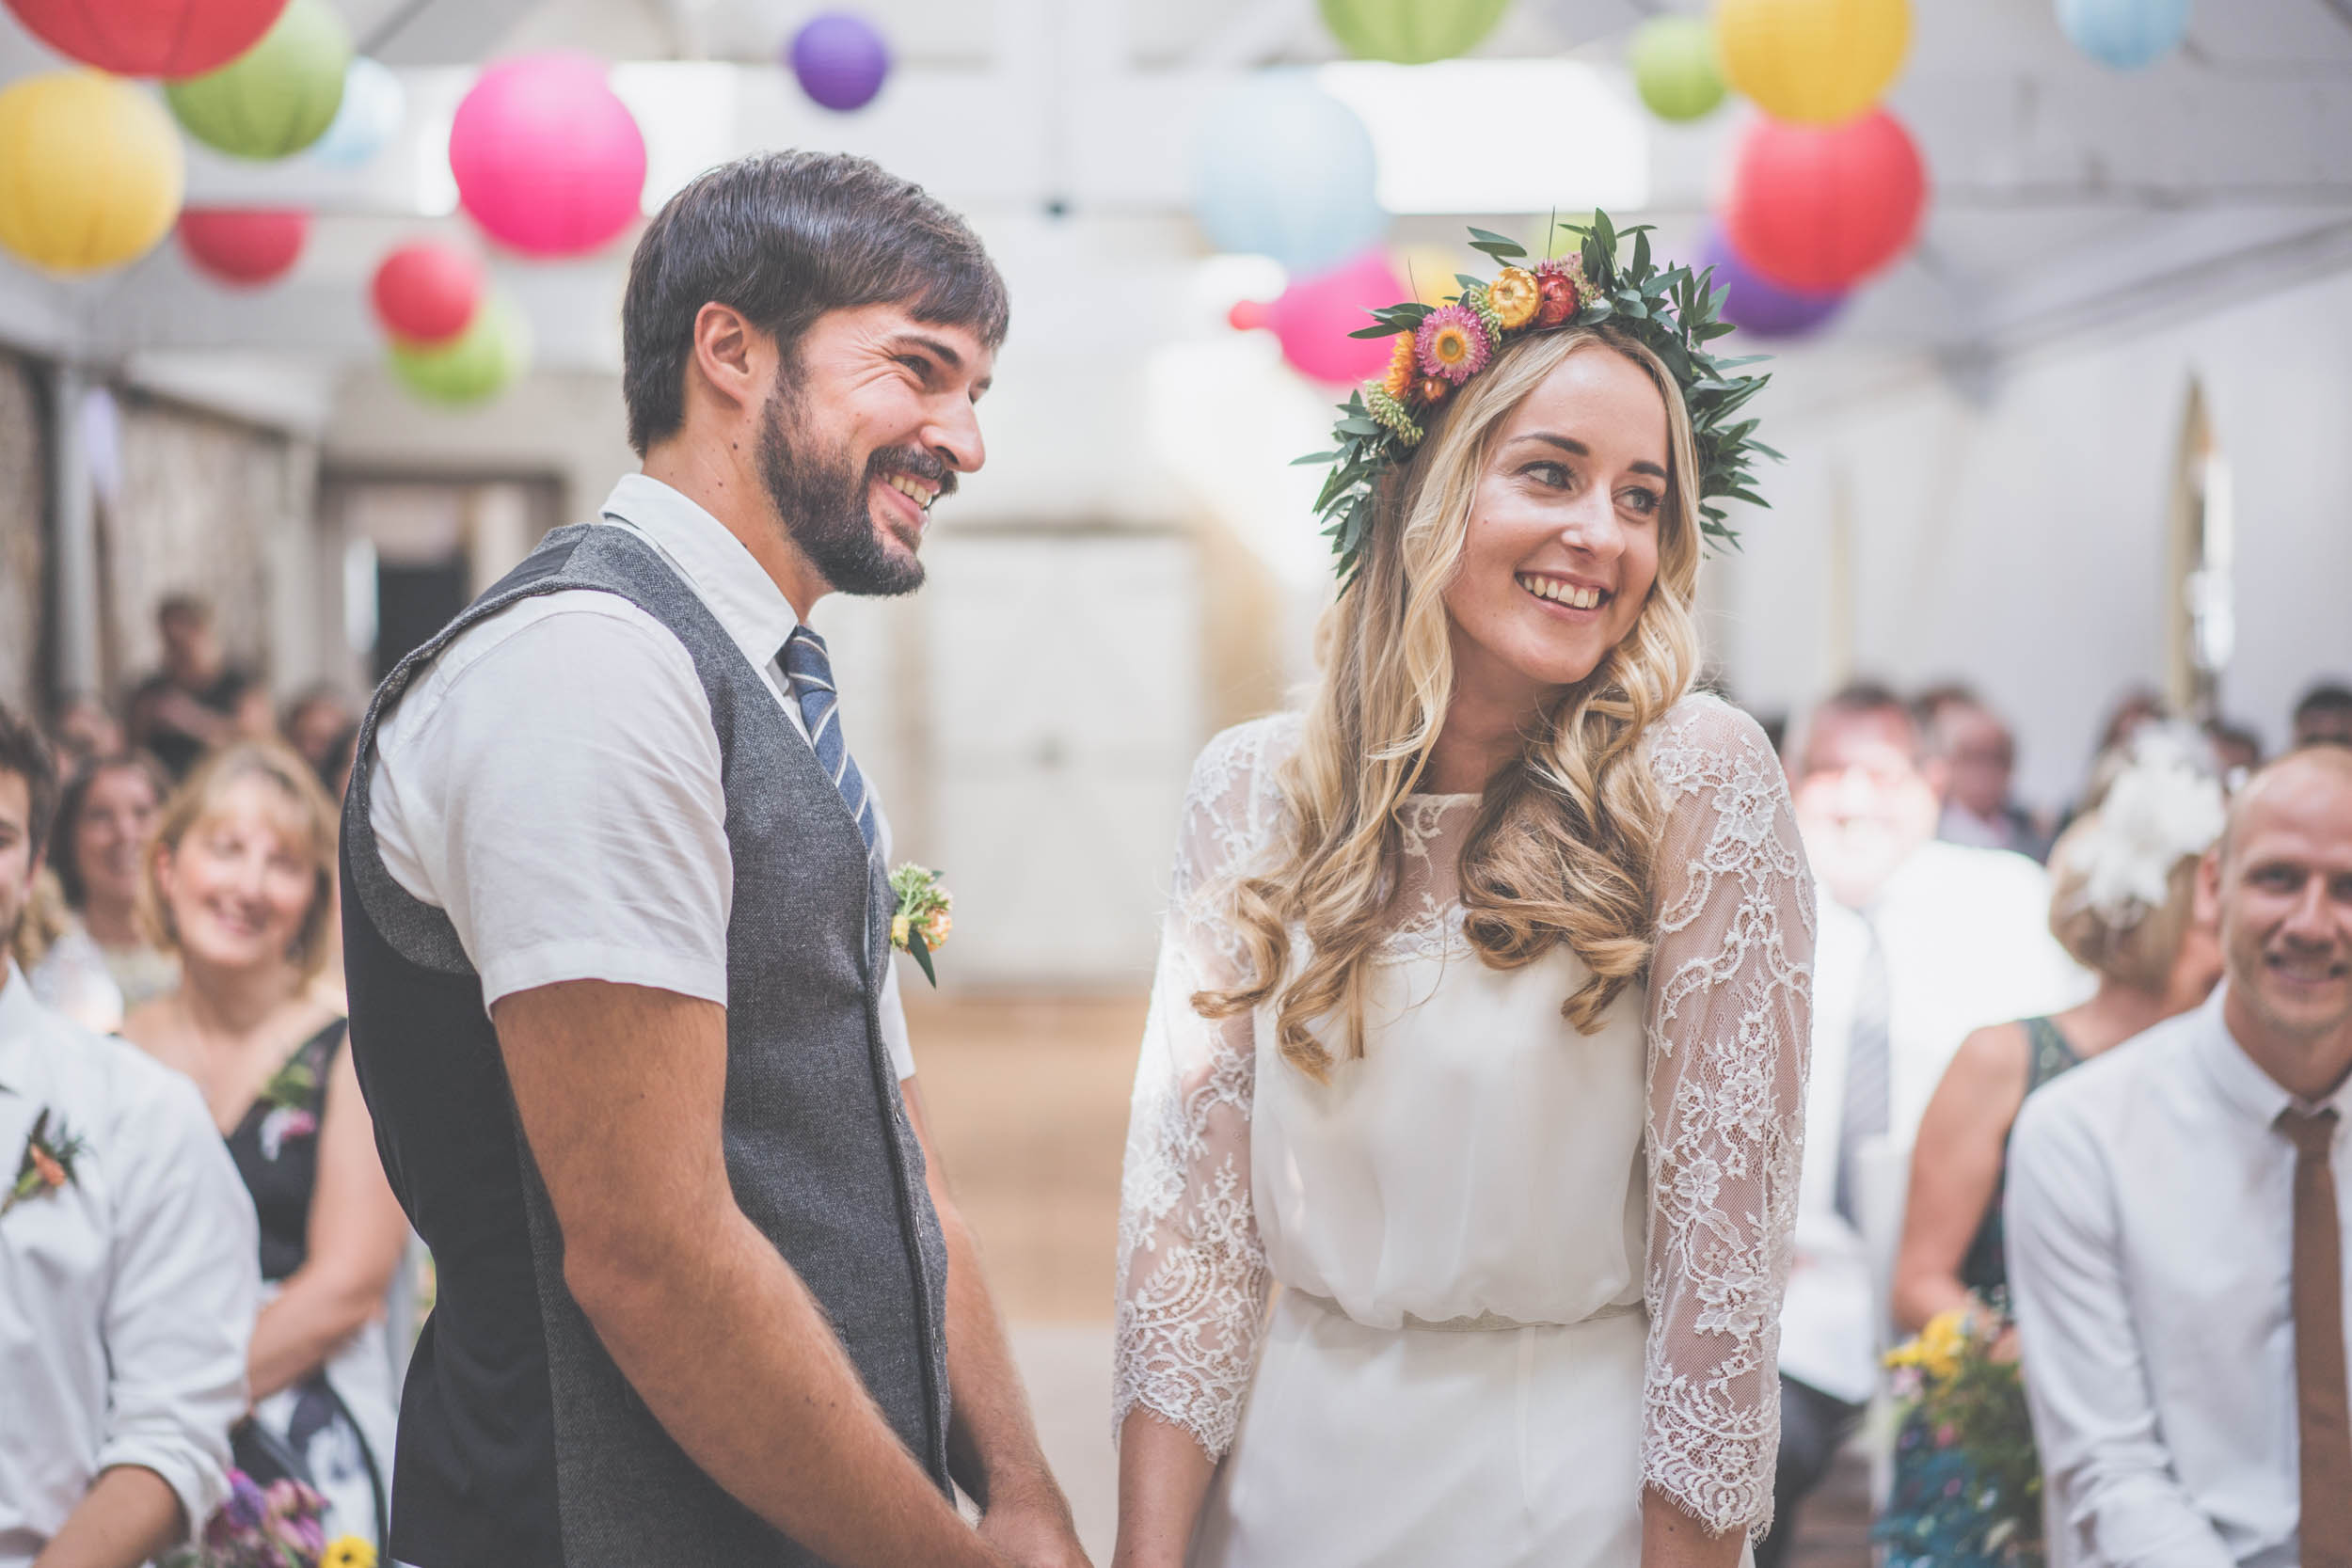 Happy newly wed couple aisle smile, North Wales.